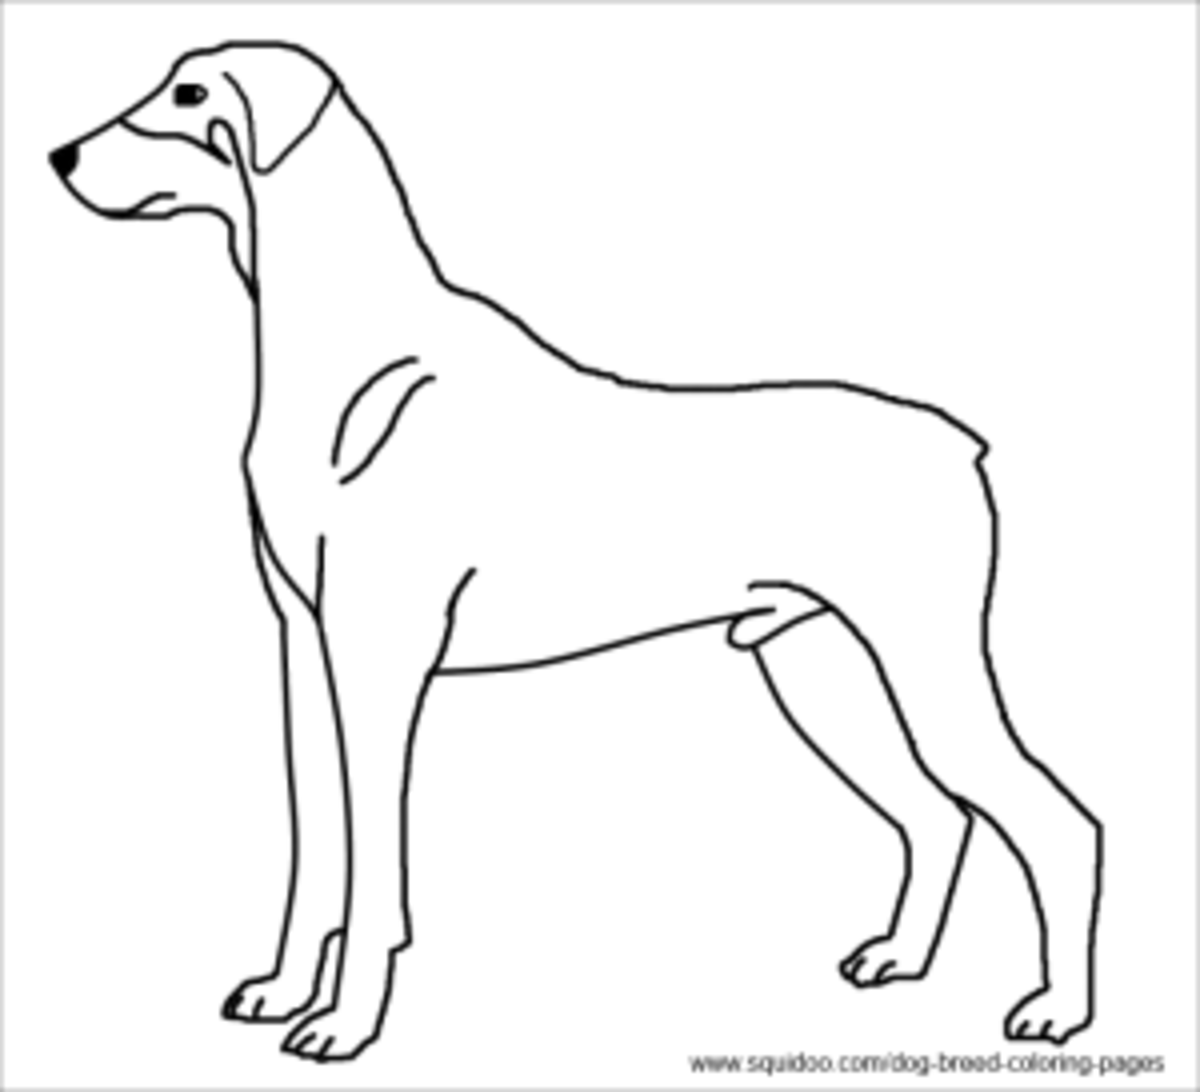 doberman pinscher coloring sheet